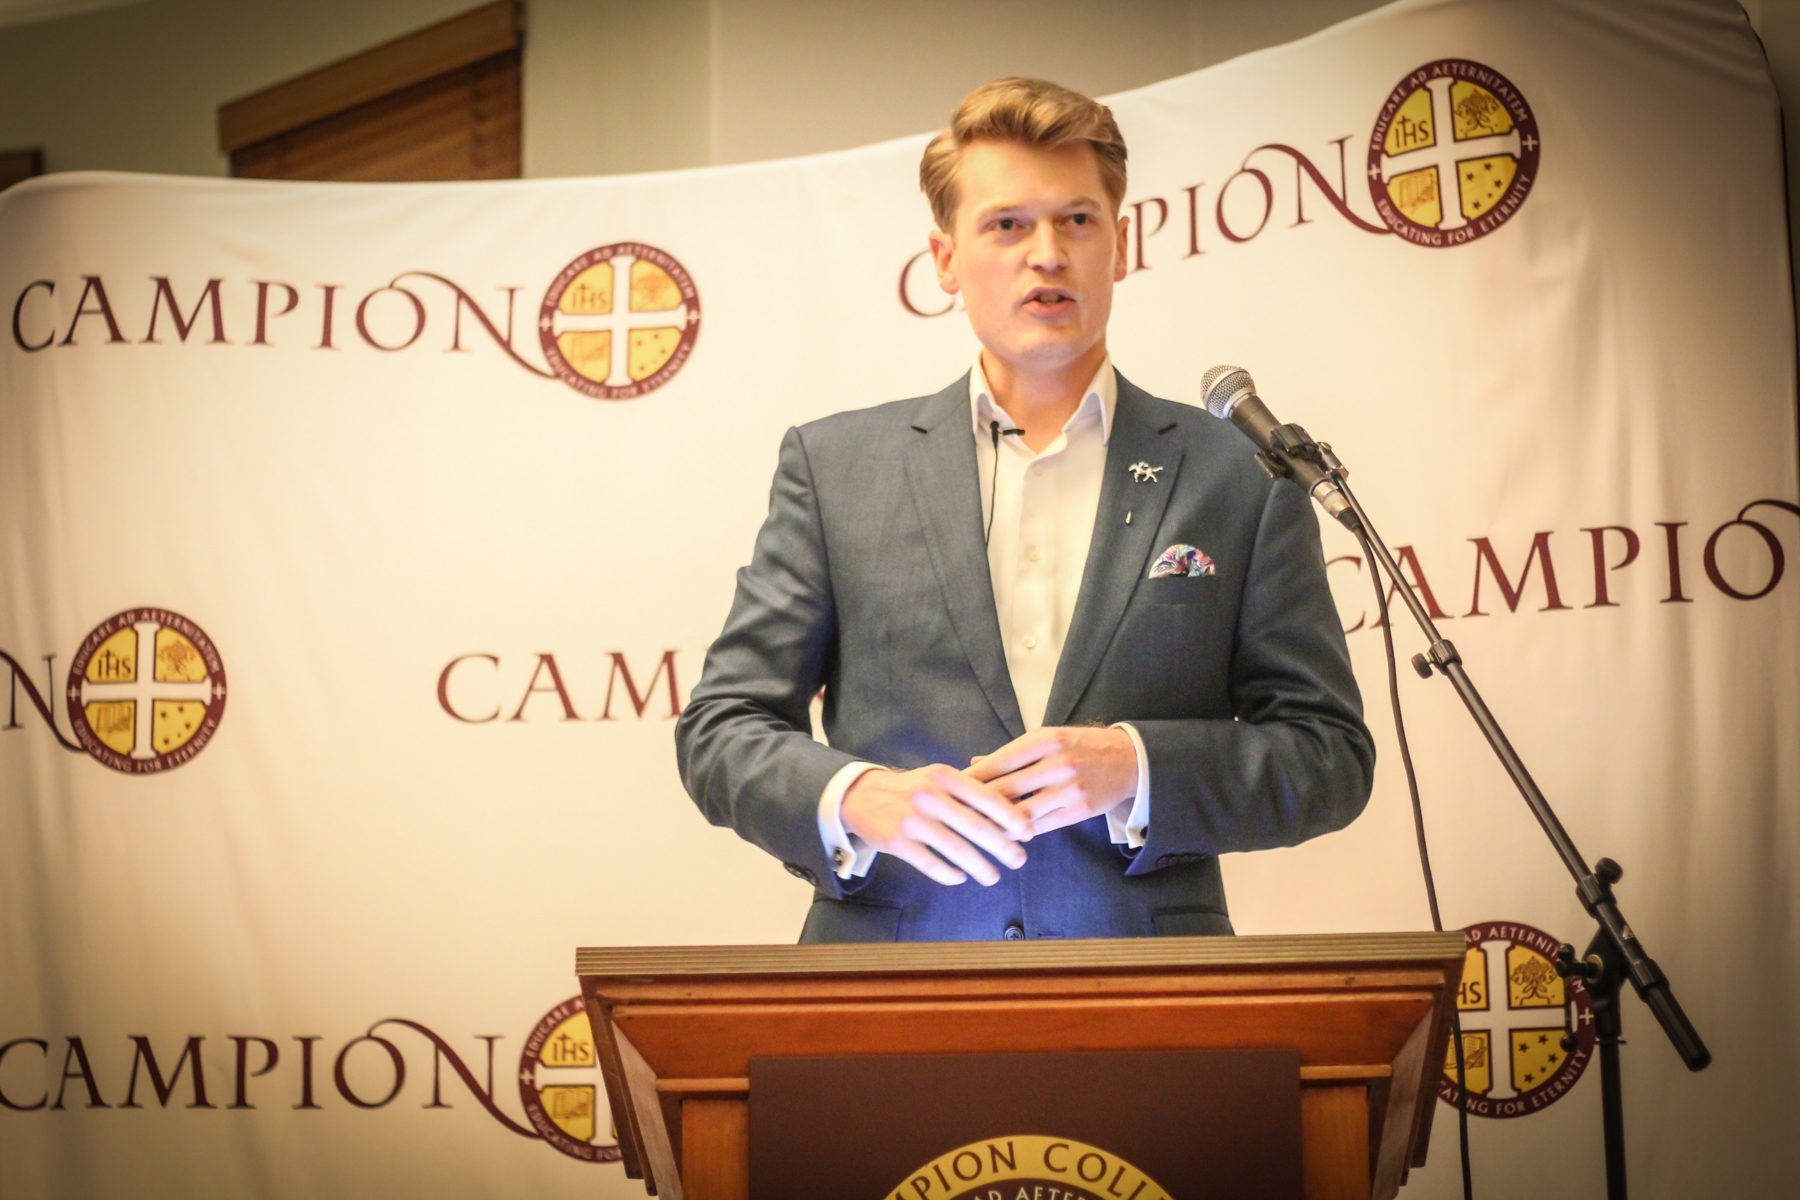 Martyn Iles visited Campion College